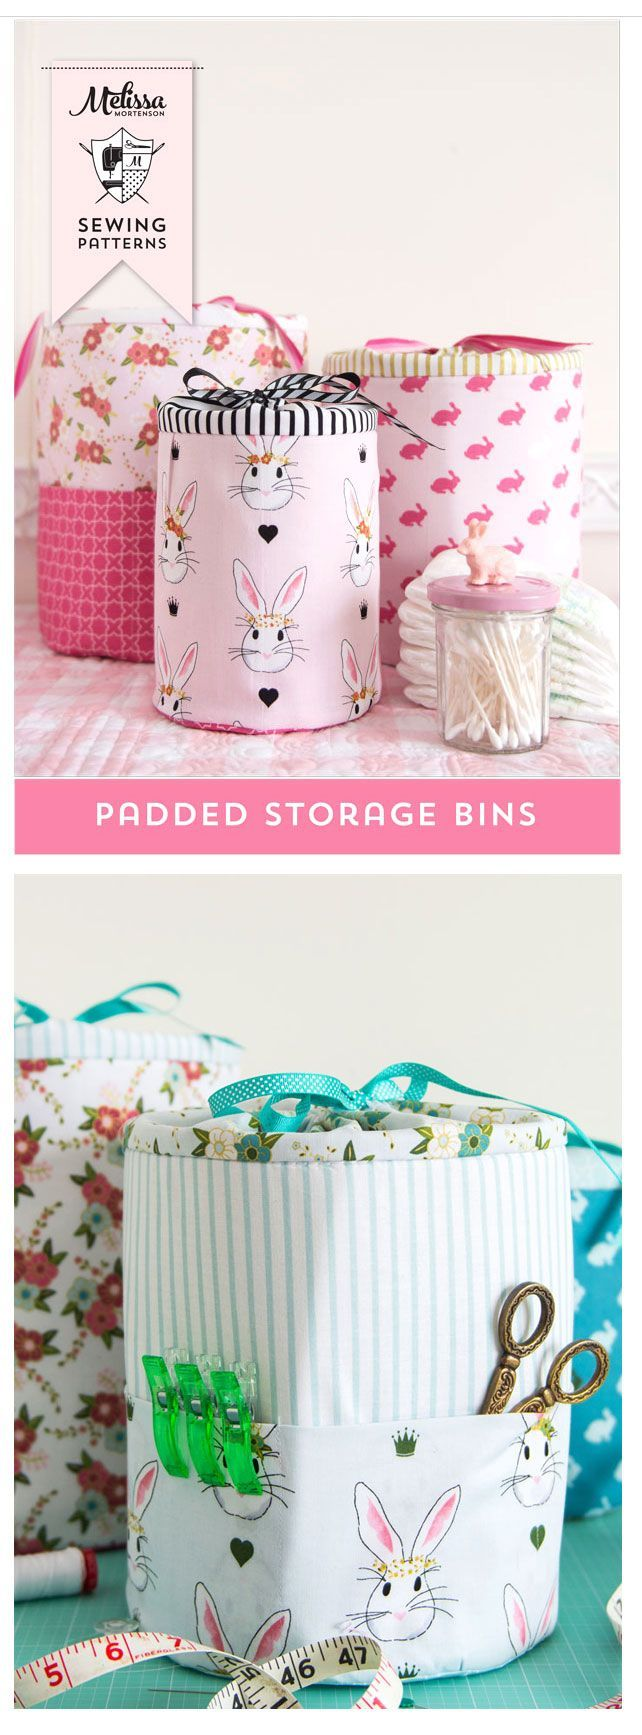 Sewing Pattern For Padded Storage Bins In 3 Sizes. Make Great And Really  Cute Storage